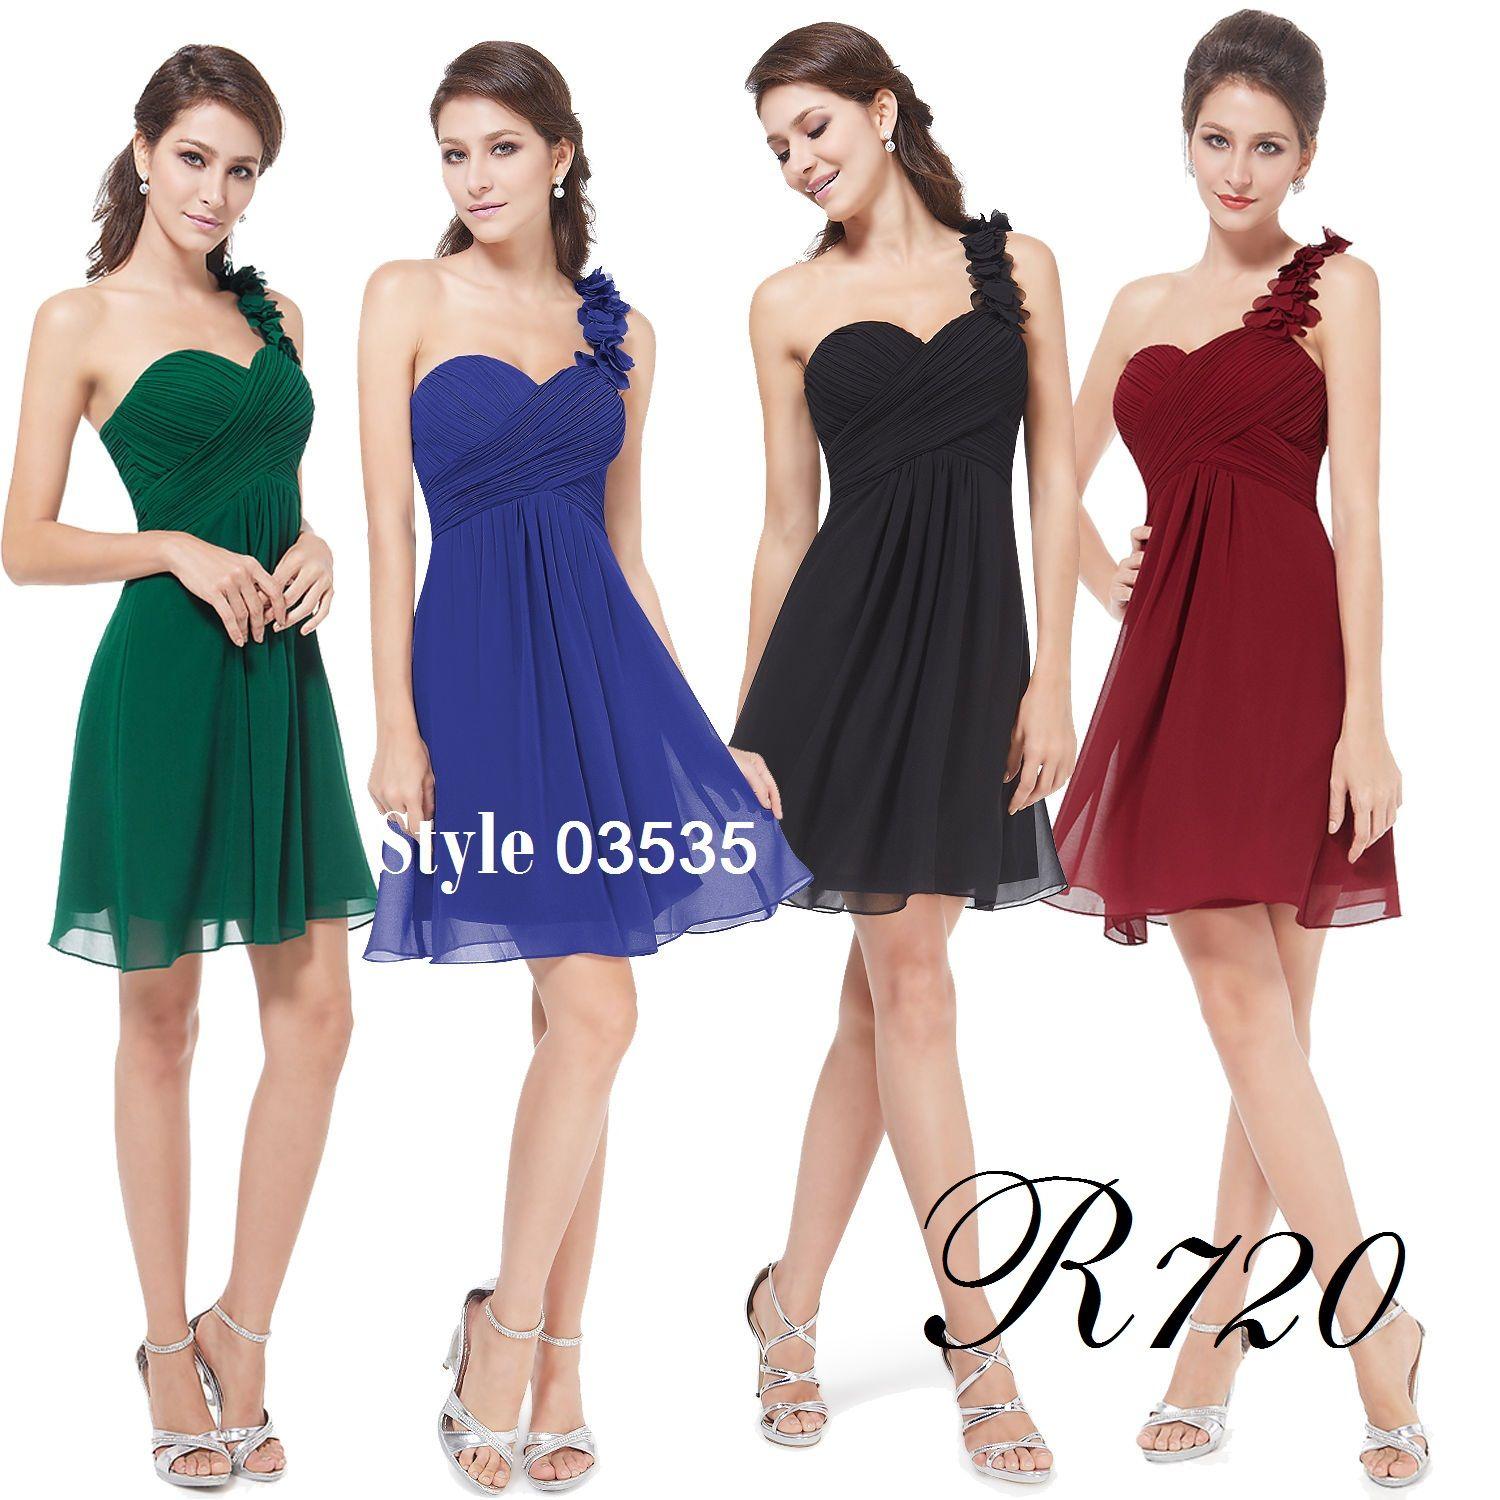 Httpbridalallurebridesmaids dressesshop by color cheap dress sleeveless buy quality dress free directly from china dress summer suppliers gorgeous bridesmaid dress unadjustable ombrellifo Gallery